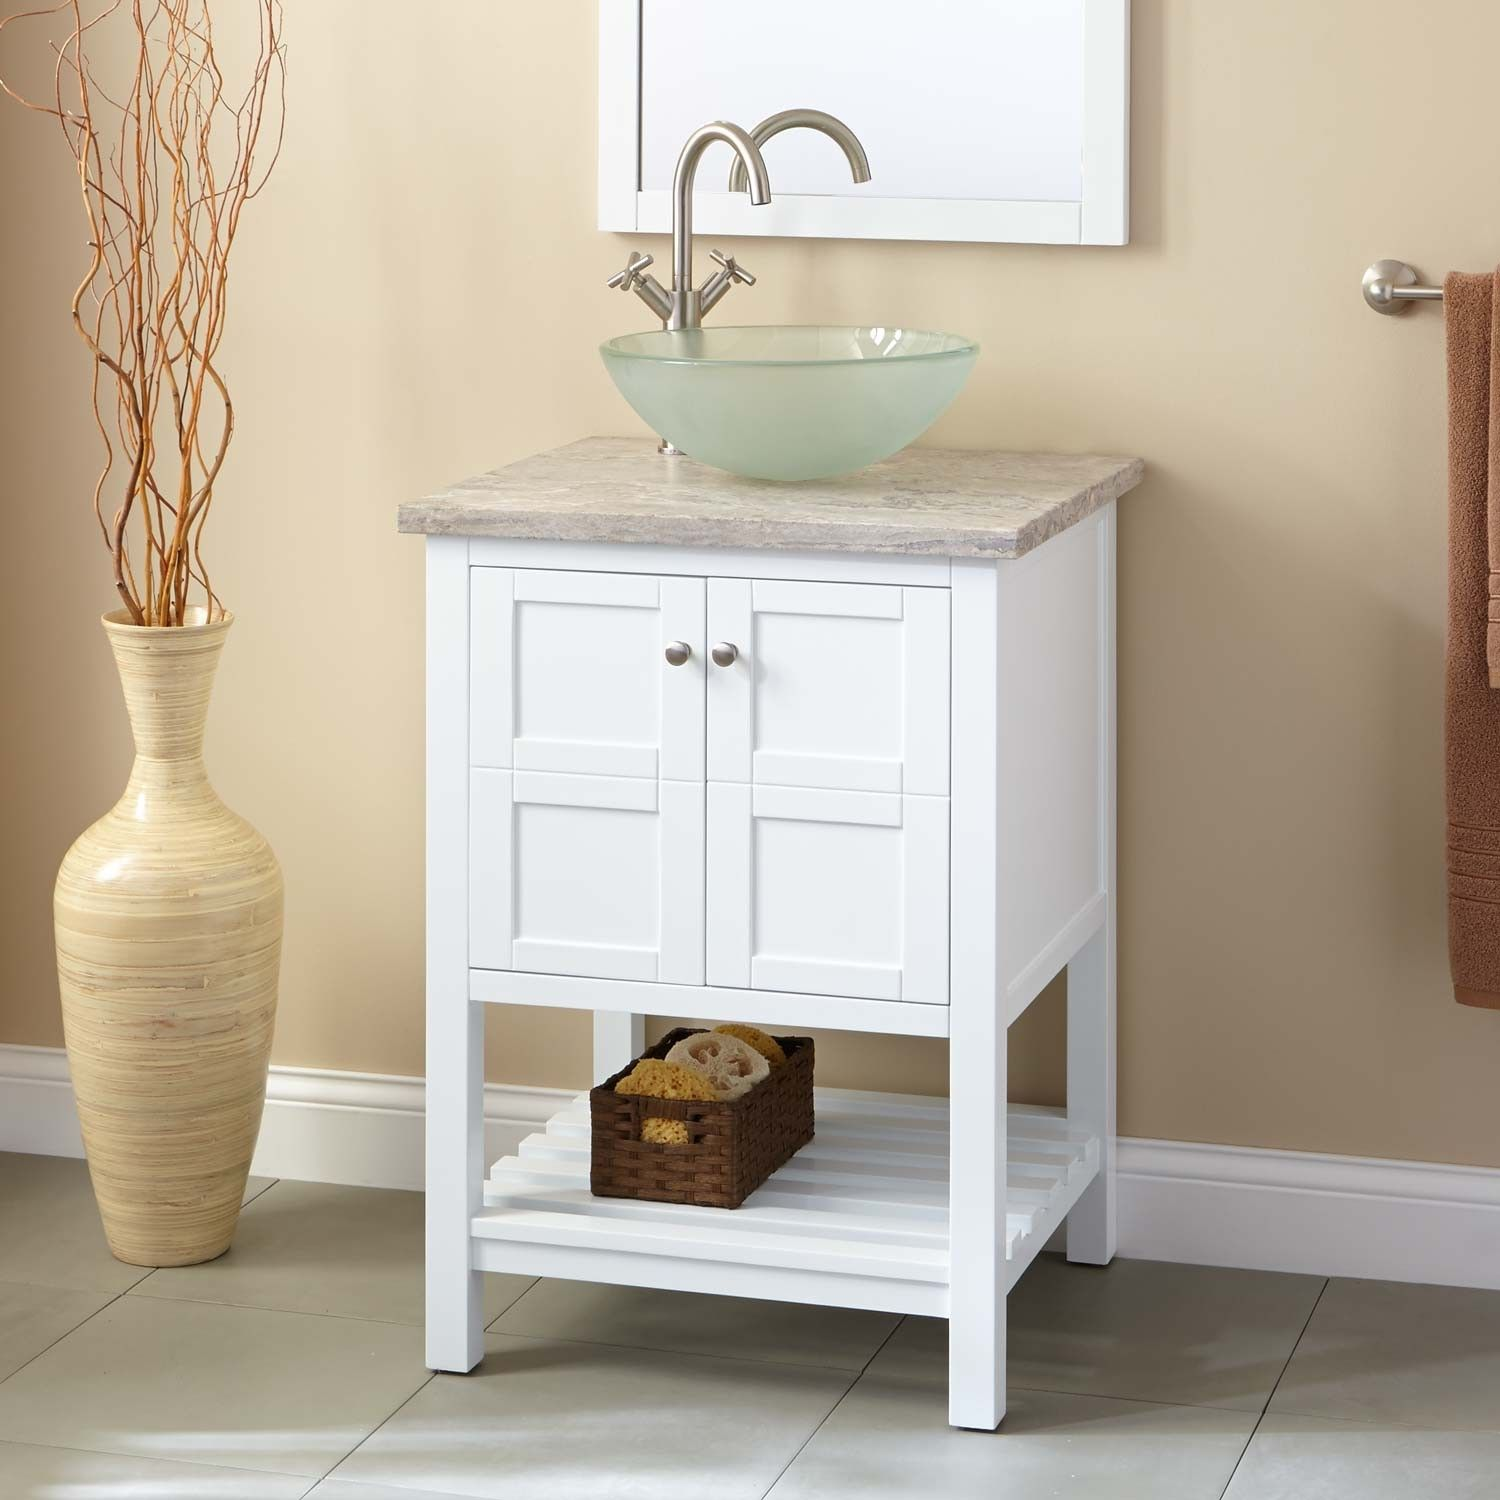 24 Everett Vessel Sink Vanity White 24 Inch Bathroom Vanity